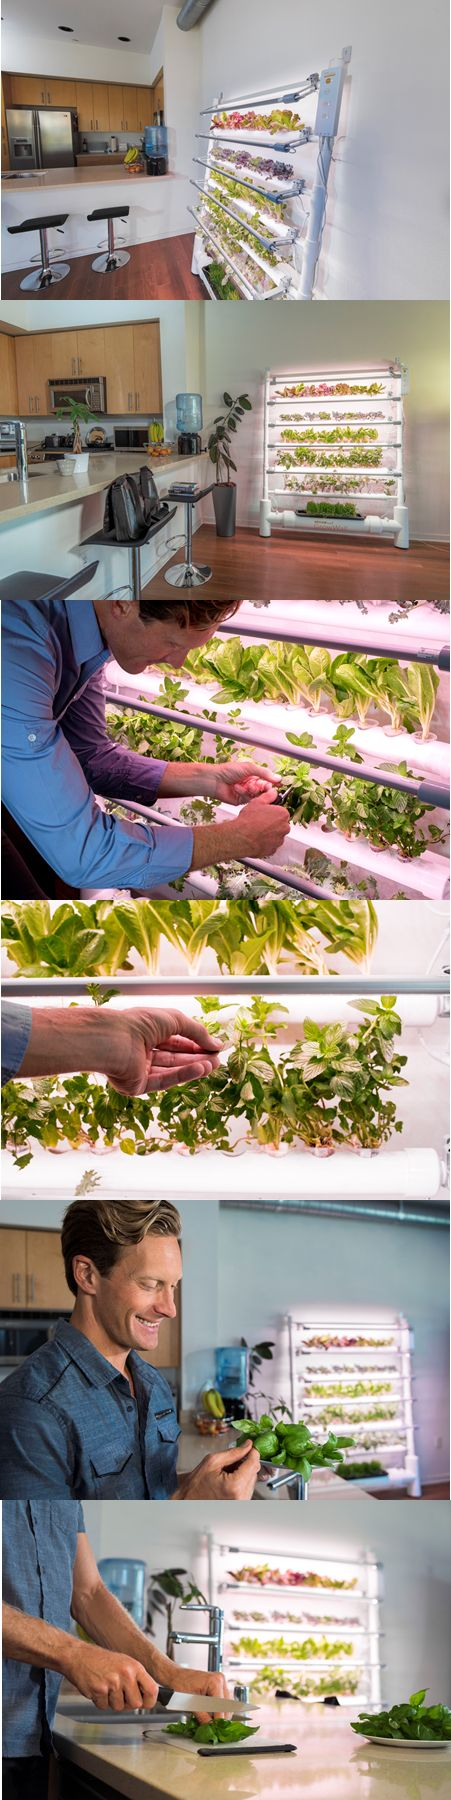 The new GrowWall is designed to grow up to 75 herbs, fruits or vegetables at the same time, displayed on five levels for a nice touch to the passionate home gardener's indoor ambience. It's the only all-in-one hydroponic growing system that can produce a yield this high. Learn more at opcomfarm.com.